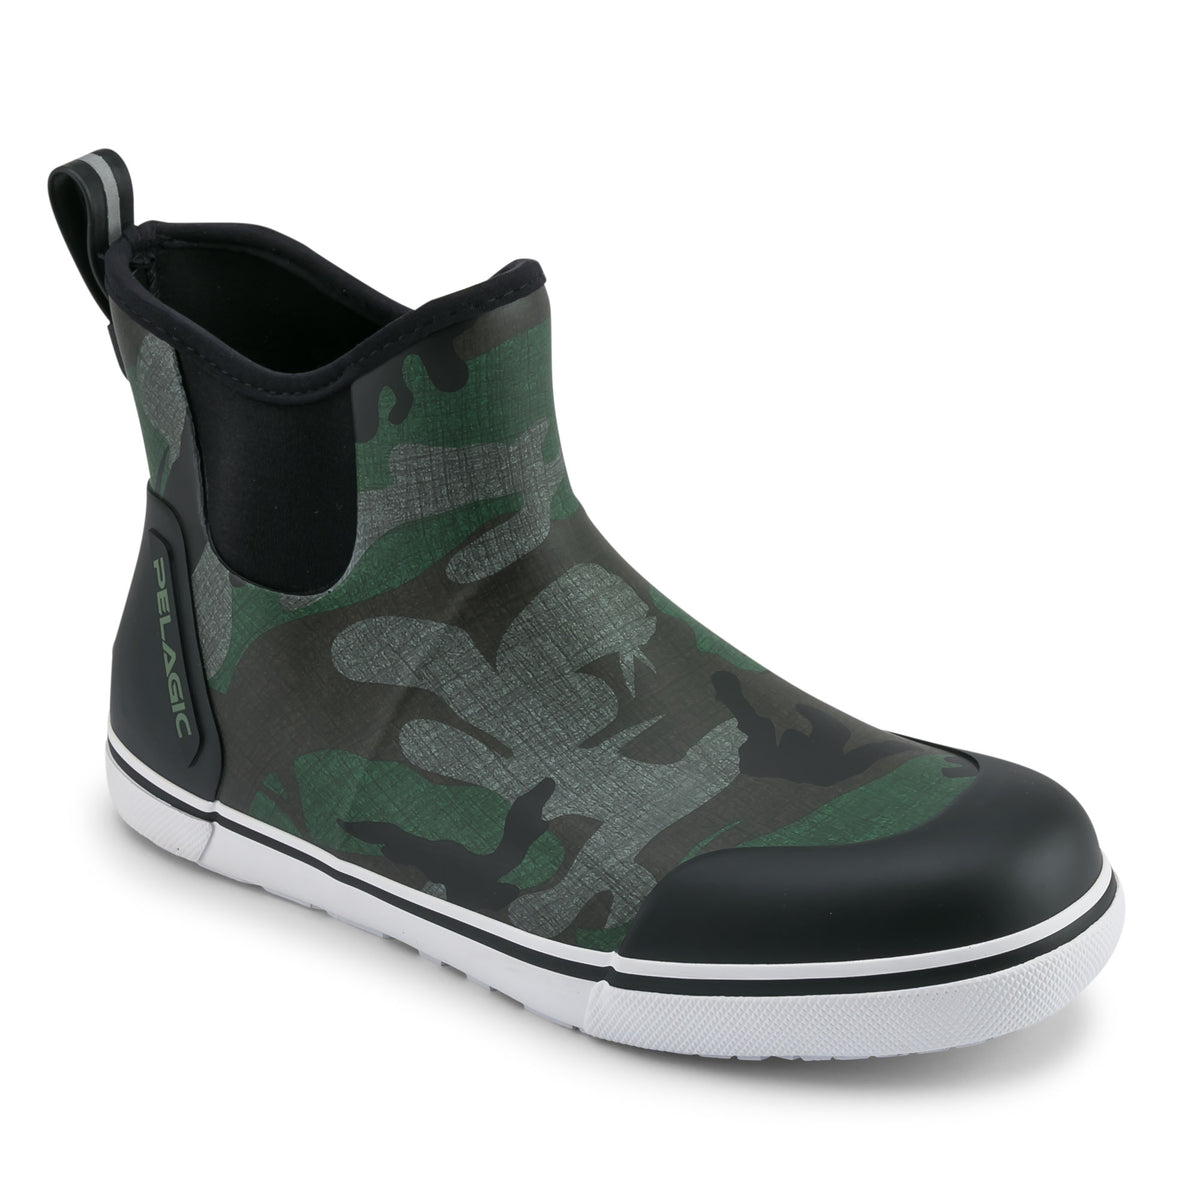 "Pursuit 6"" Deckboot-Fish Camo Green Big Image - 1"